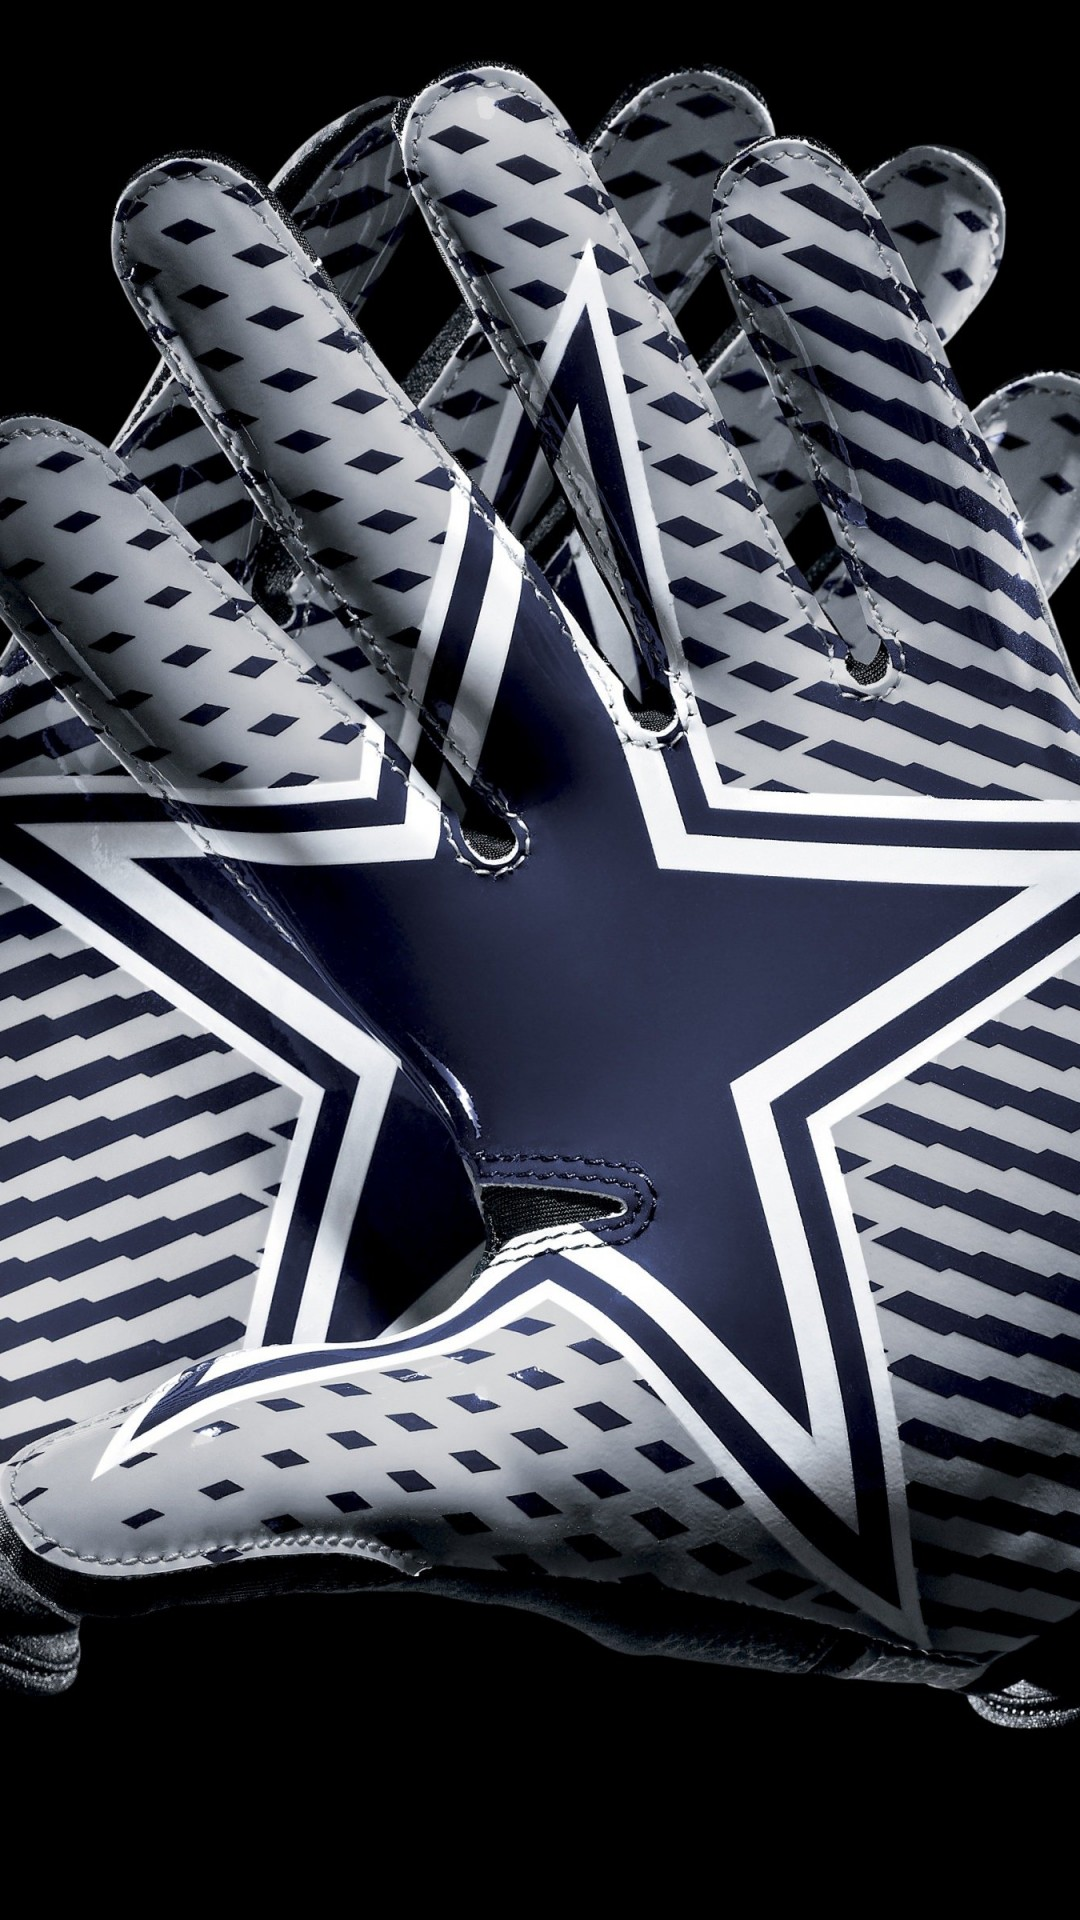 Dallas Cowboys Gloves Wallpaper for Motorola Moto X